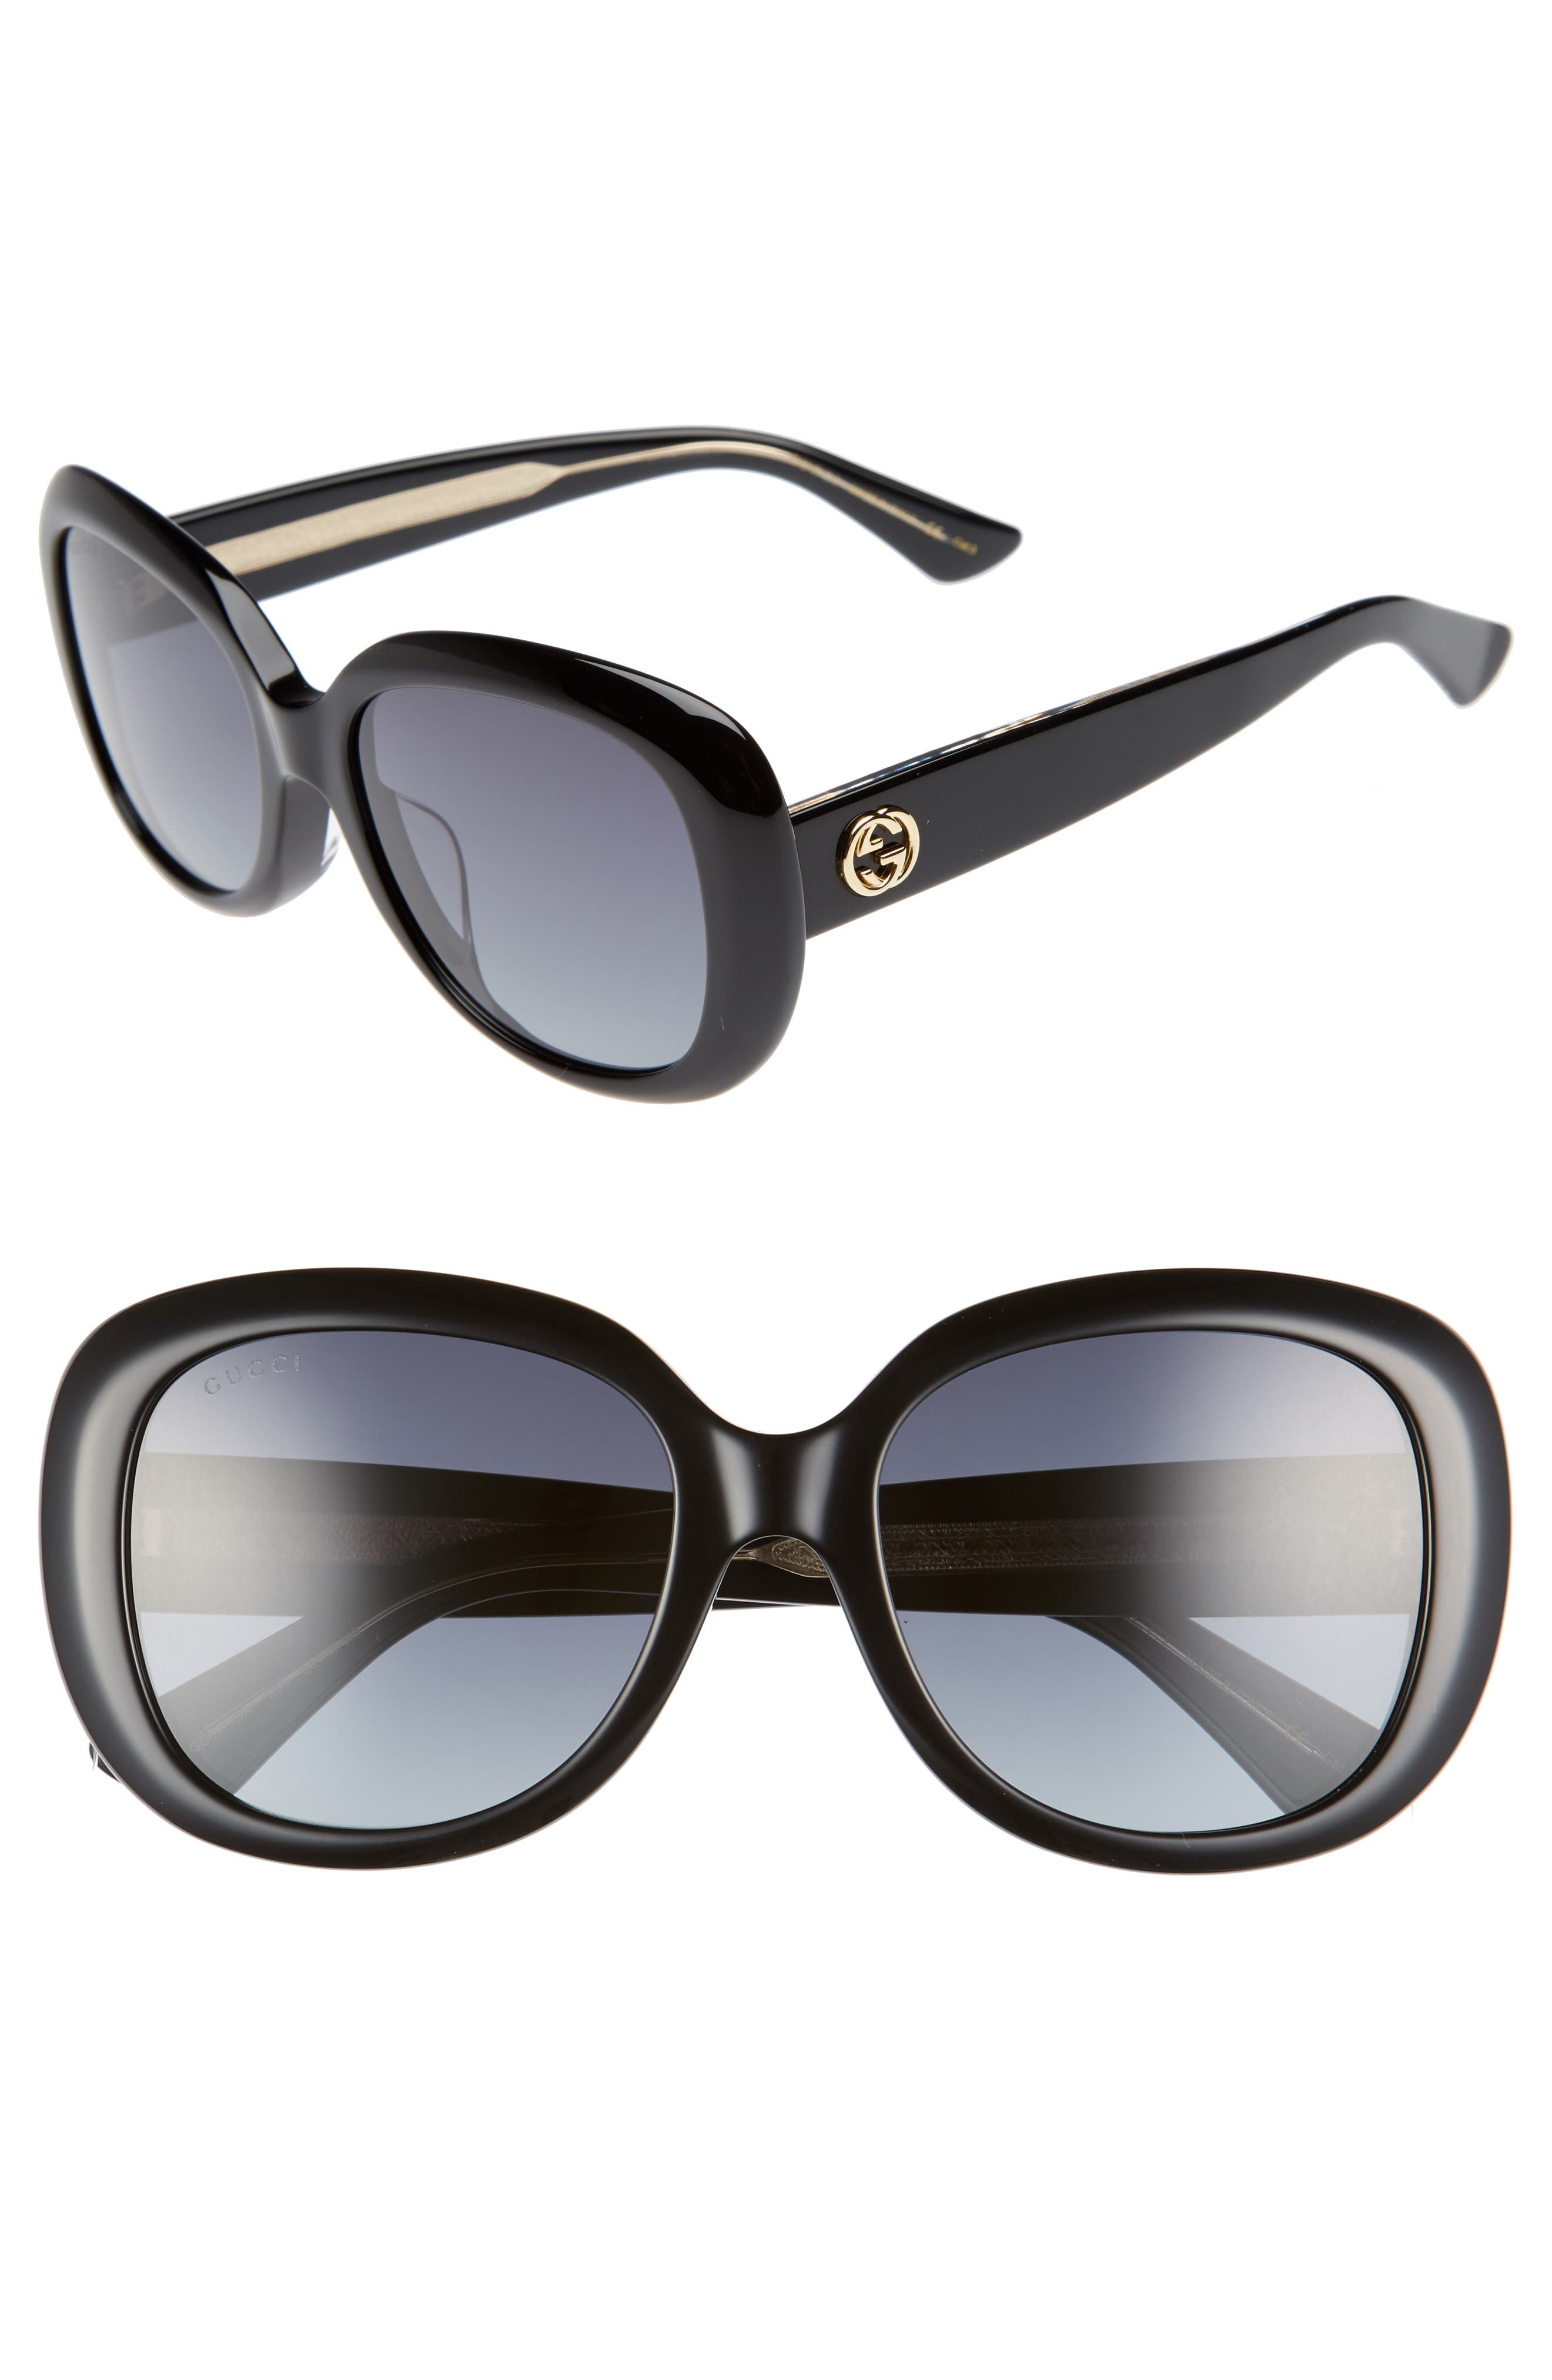 Alternate Image 1 Selected - Gucci 55mm Rectangular Sunglasses